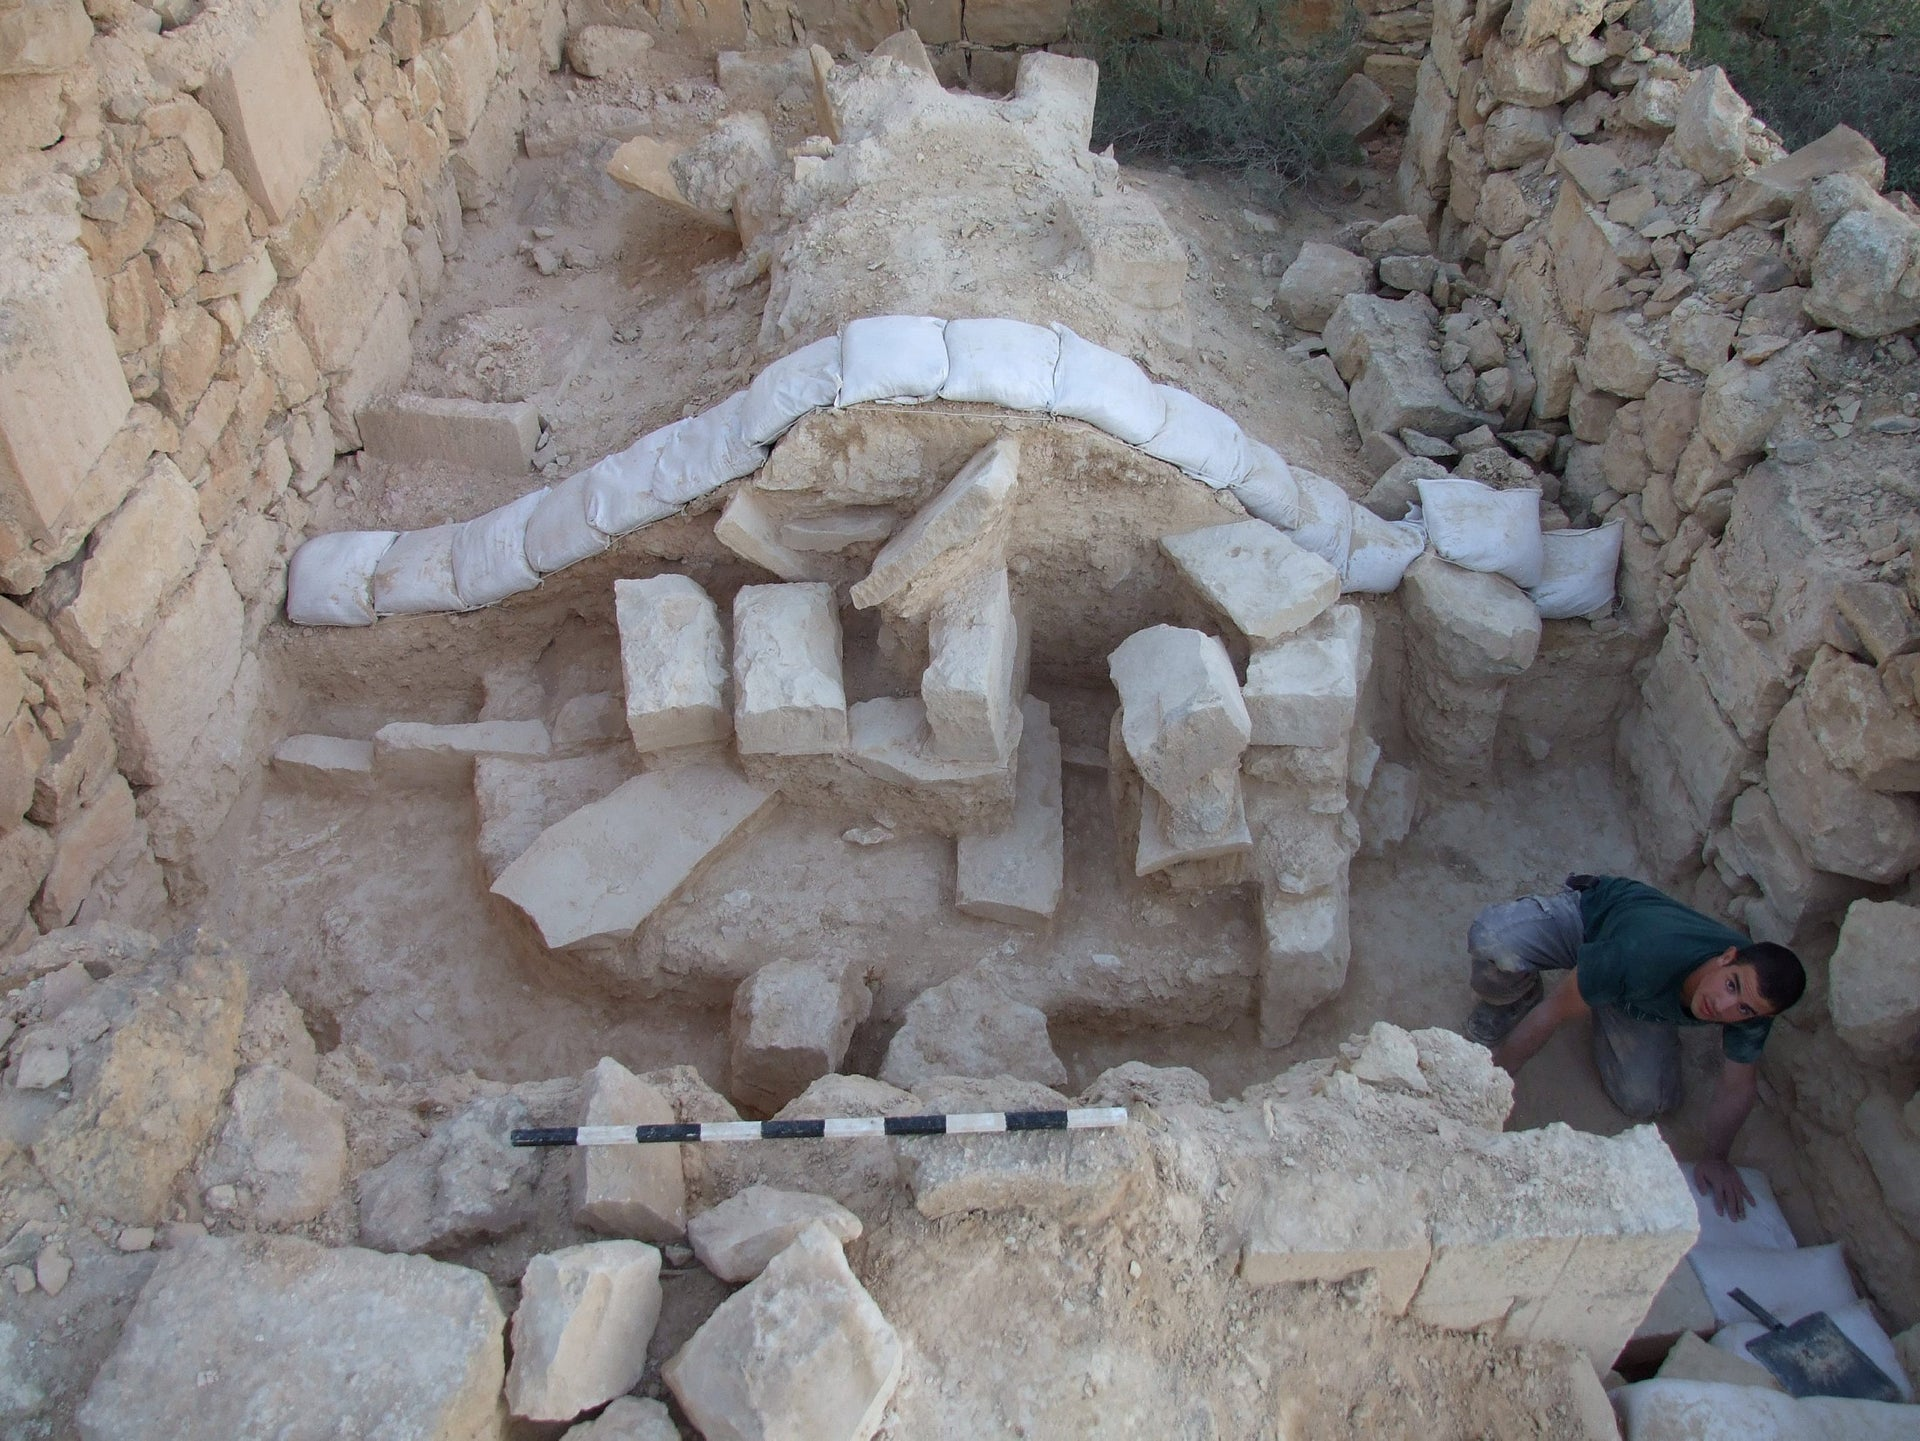 A home in the Byzantine town of Shivta in the Negev, which had been abandoned - and was later destroyed by earthquake